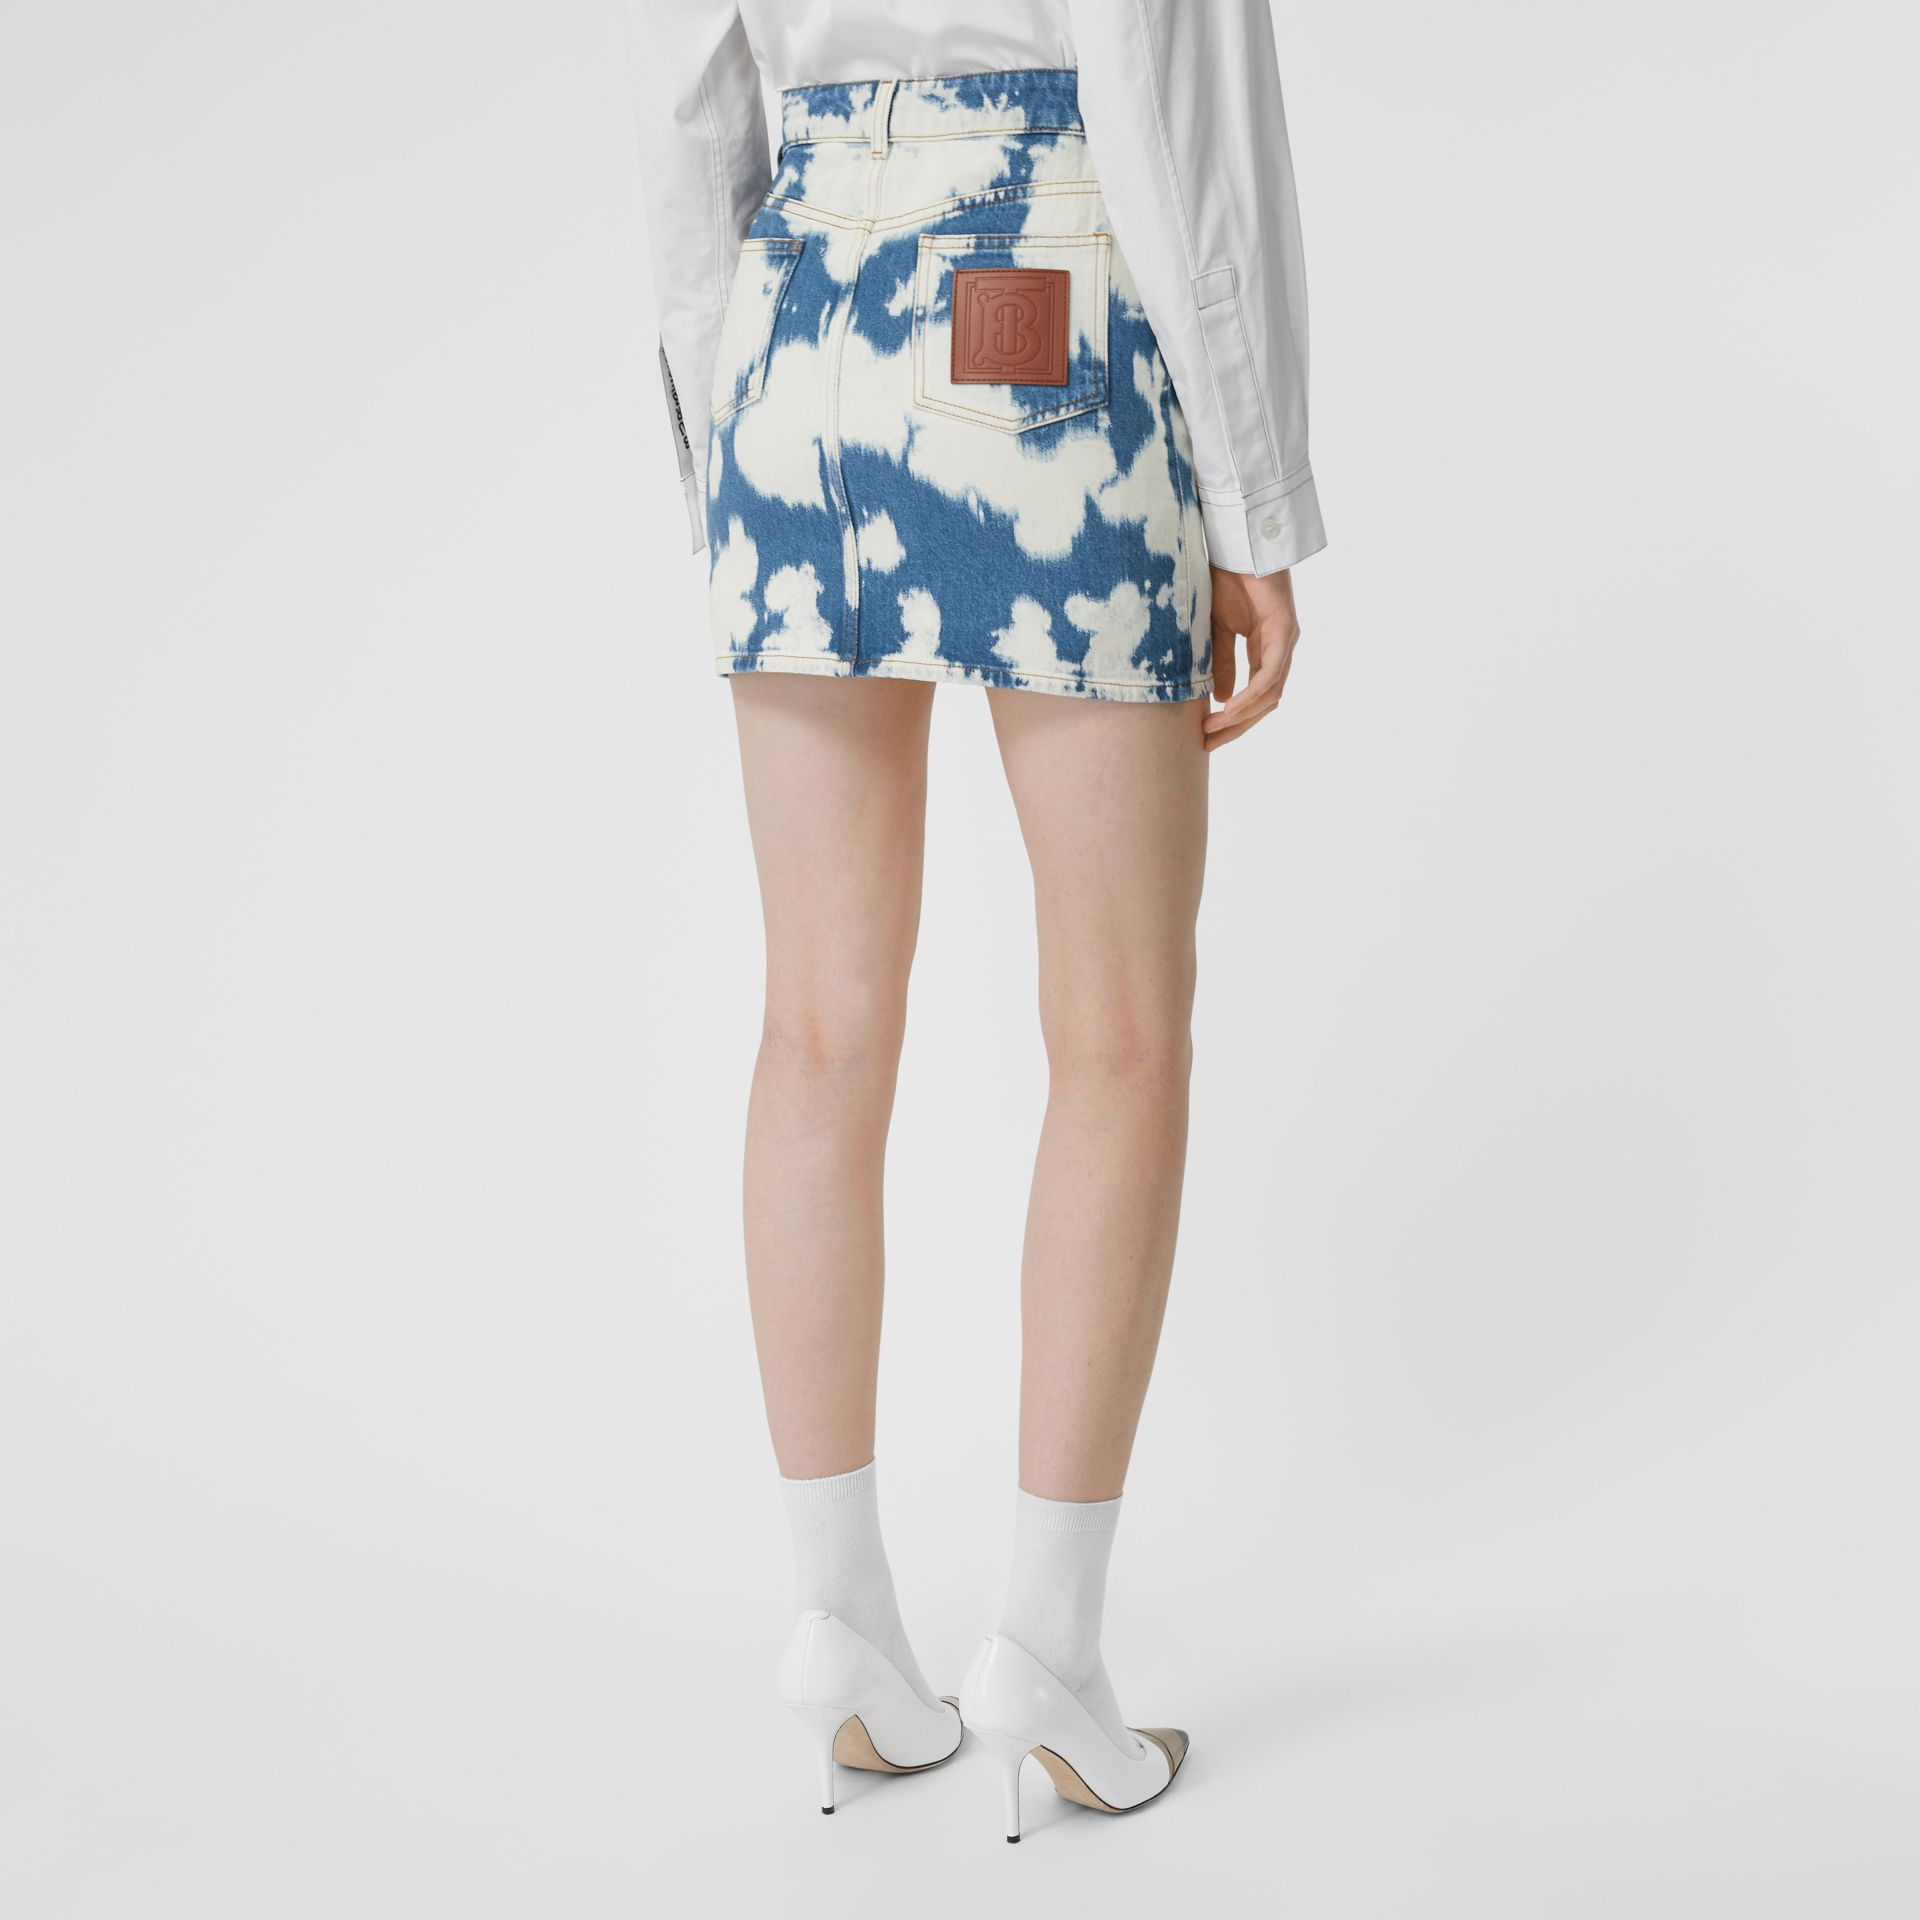 Monogram Motif Bleached Denim Mini Skirt in Blue - Women | Burberry - gallery image 2